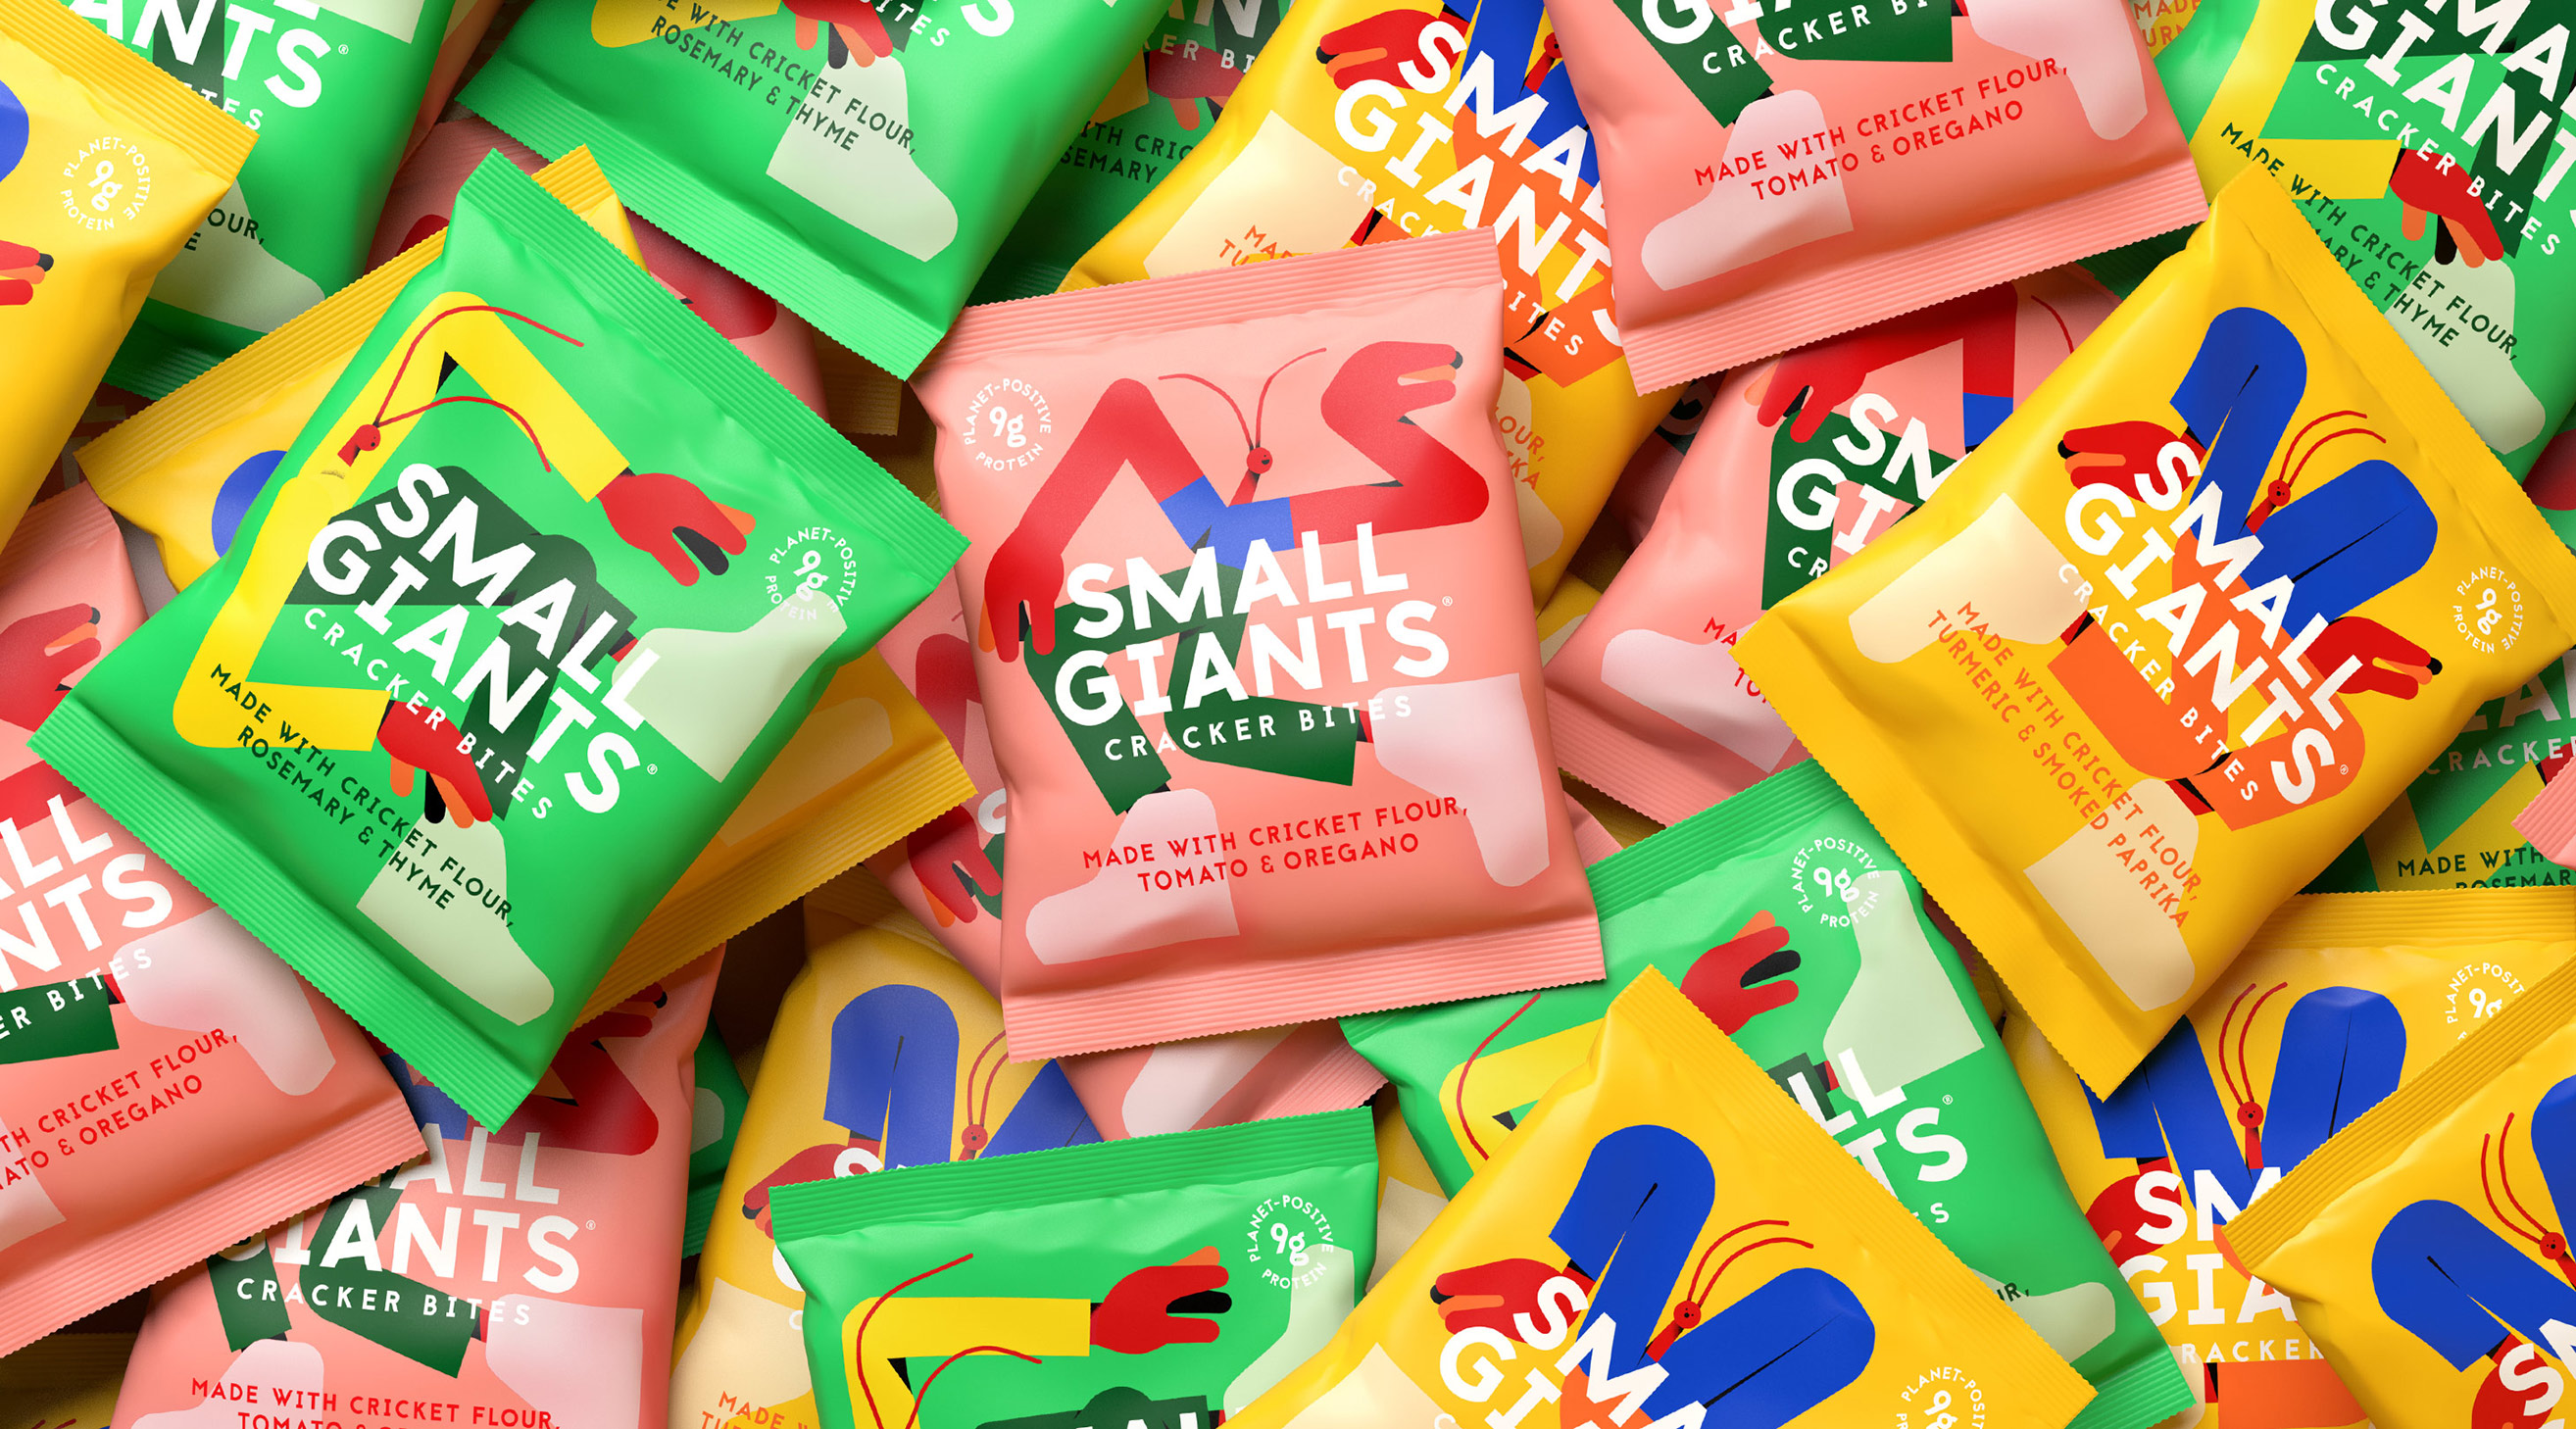 Small Giants Insect Snacks Packaging Design by Midday